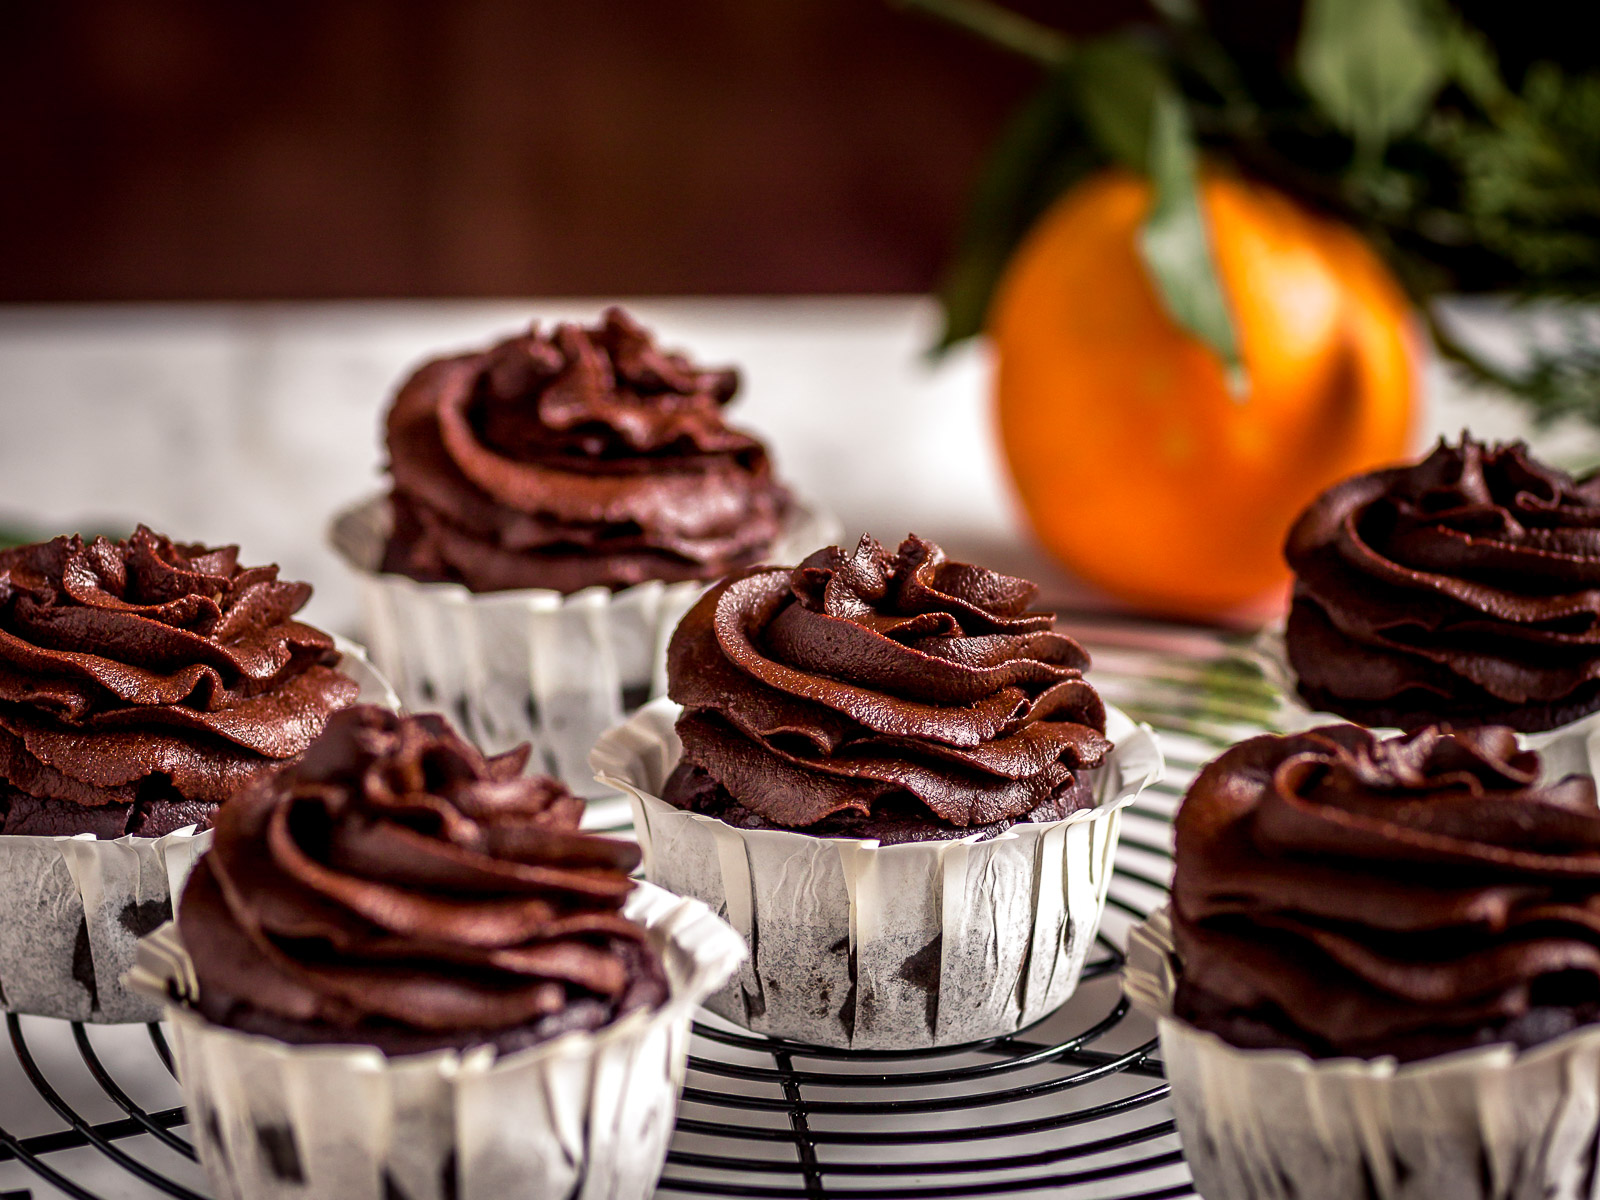 CUPCAKES VEGAN al CIOCCOLATO ARANCIA e ZUCCA mousse al cioccolato datteri e zucca senza zucchero #Vegan CHOCOLATE PUMPKIN CUPCAKES with orange and DATE #CHOCOLATE frosting #vegan